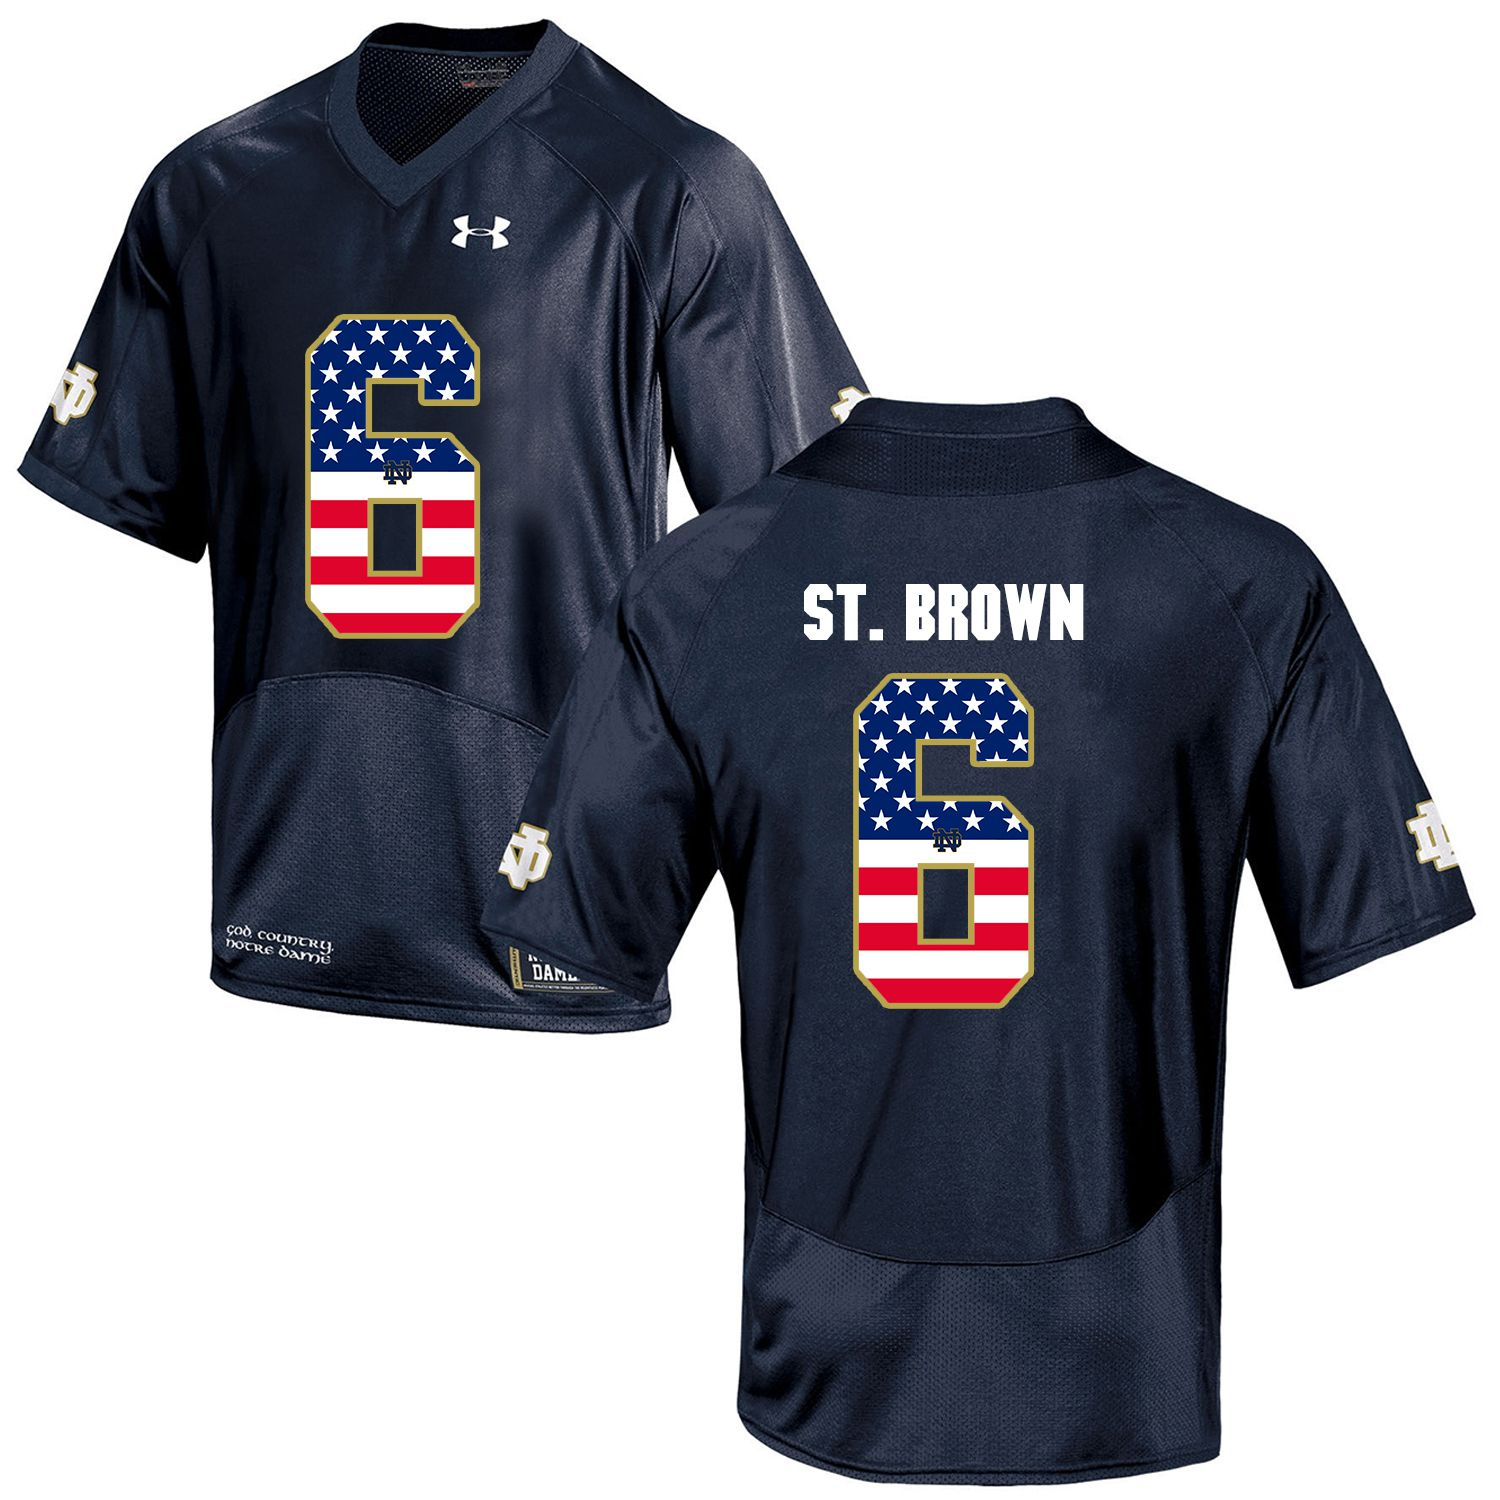 Men Norte Dame Fighting Irish 6 St.Brown Navy Blue Flag Customized NCAA Jerseys